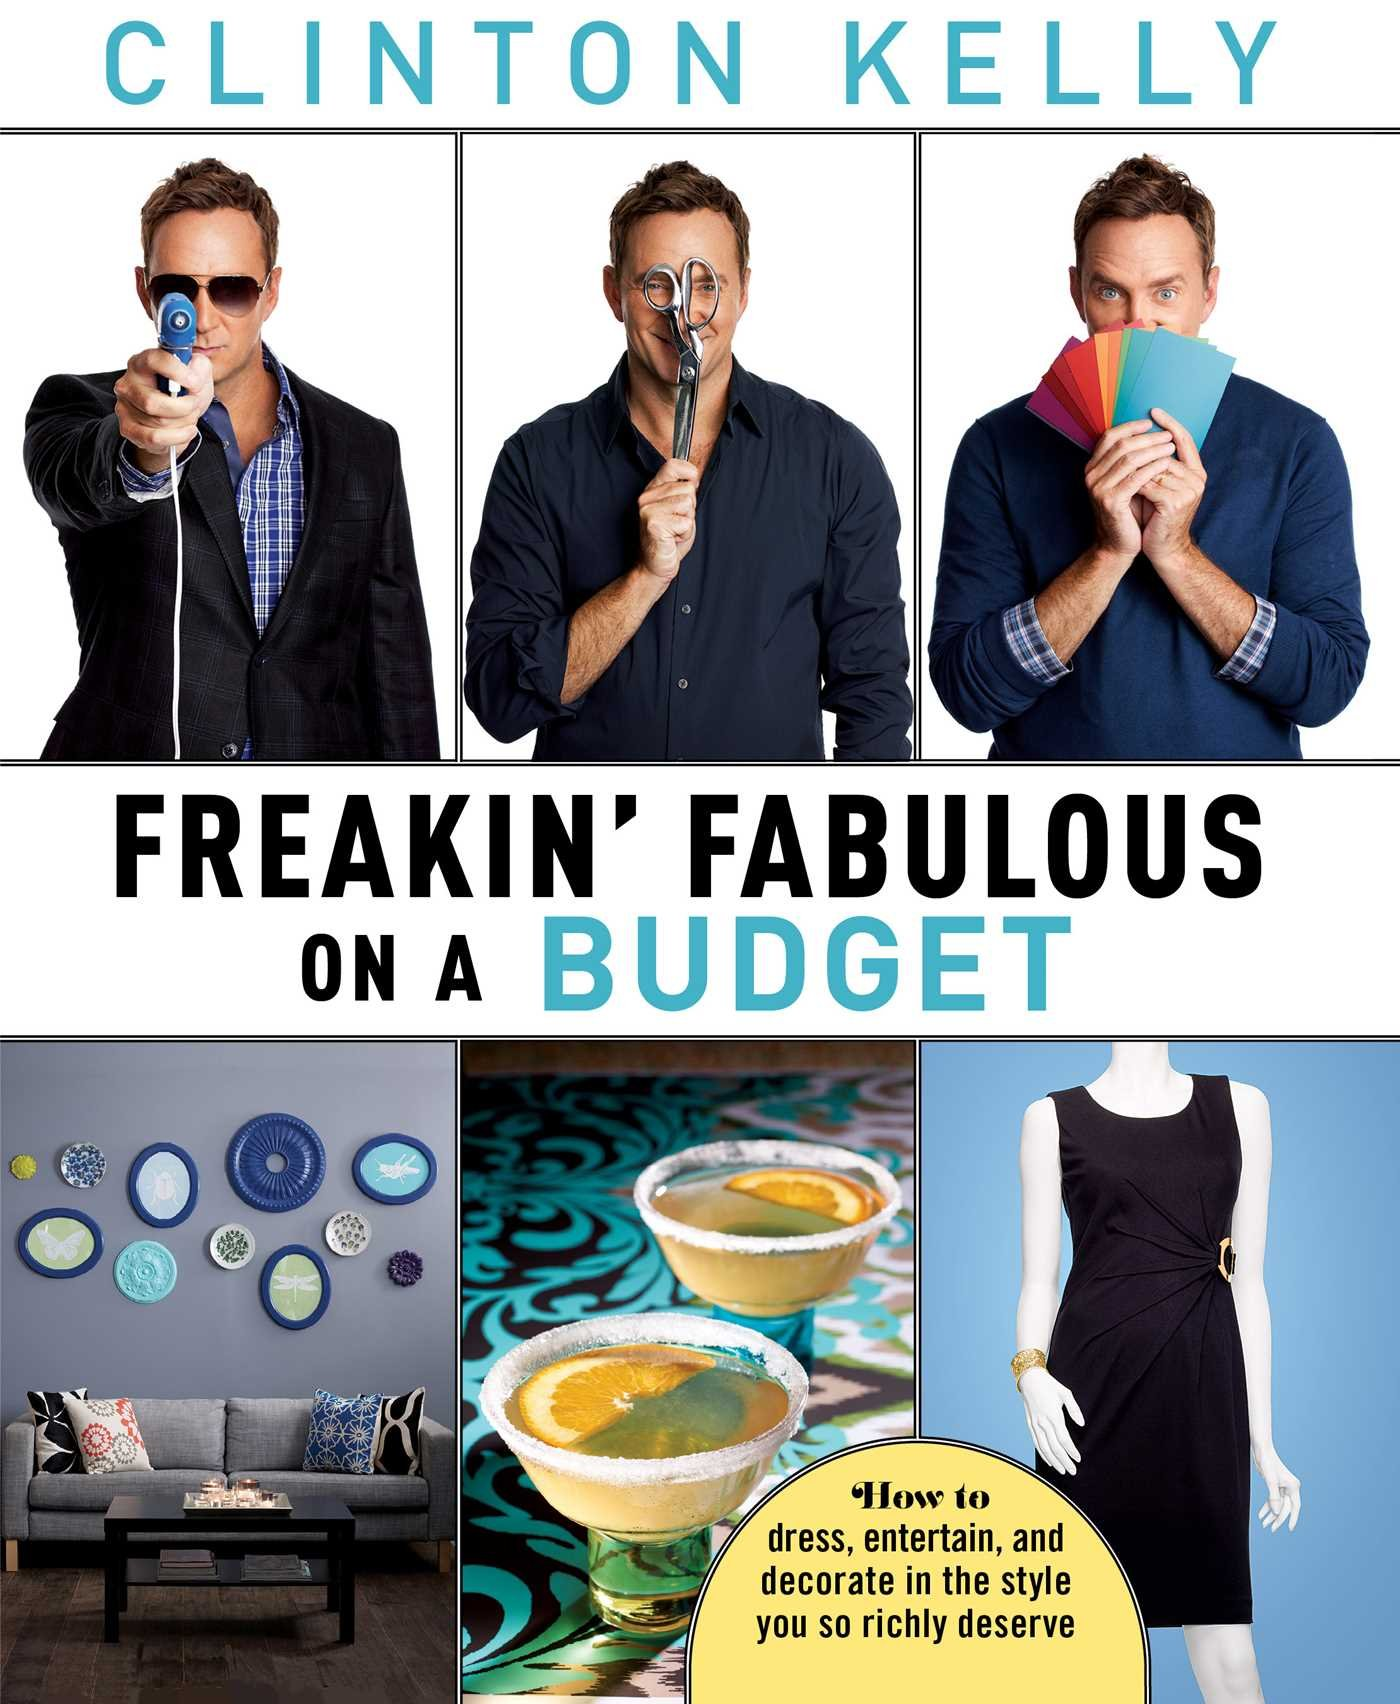 Freakin' Fabulous On A Budget: Clinton Kelly: 9781476771359: Amazon:  Books